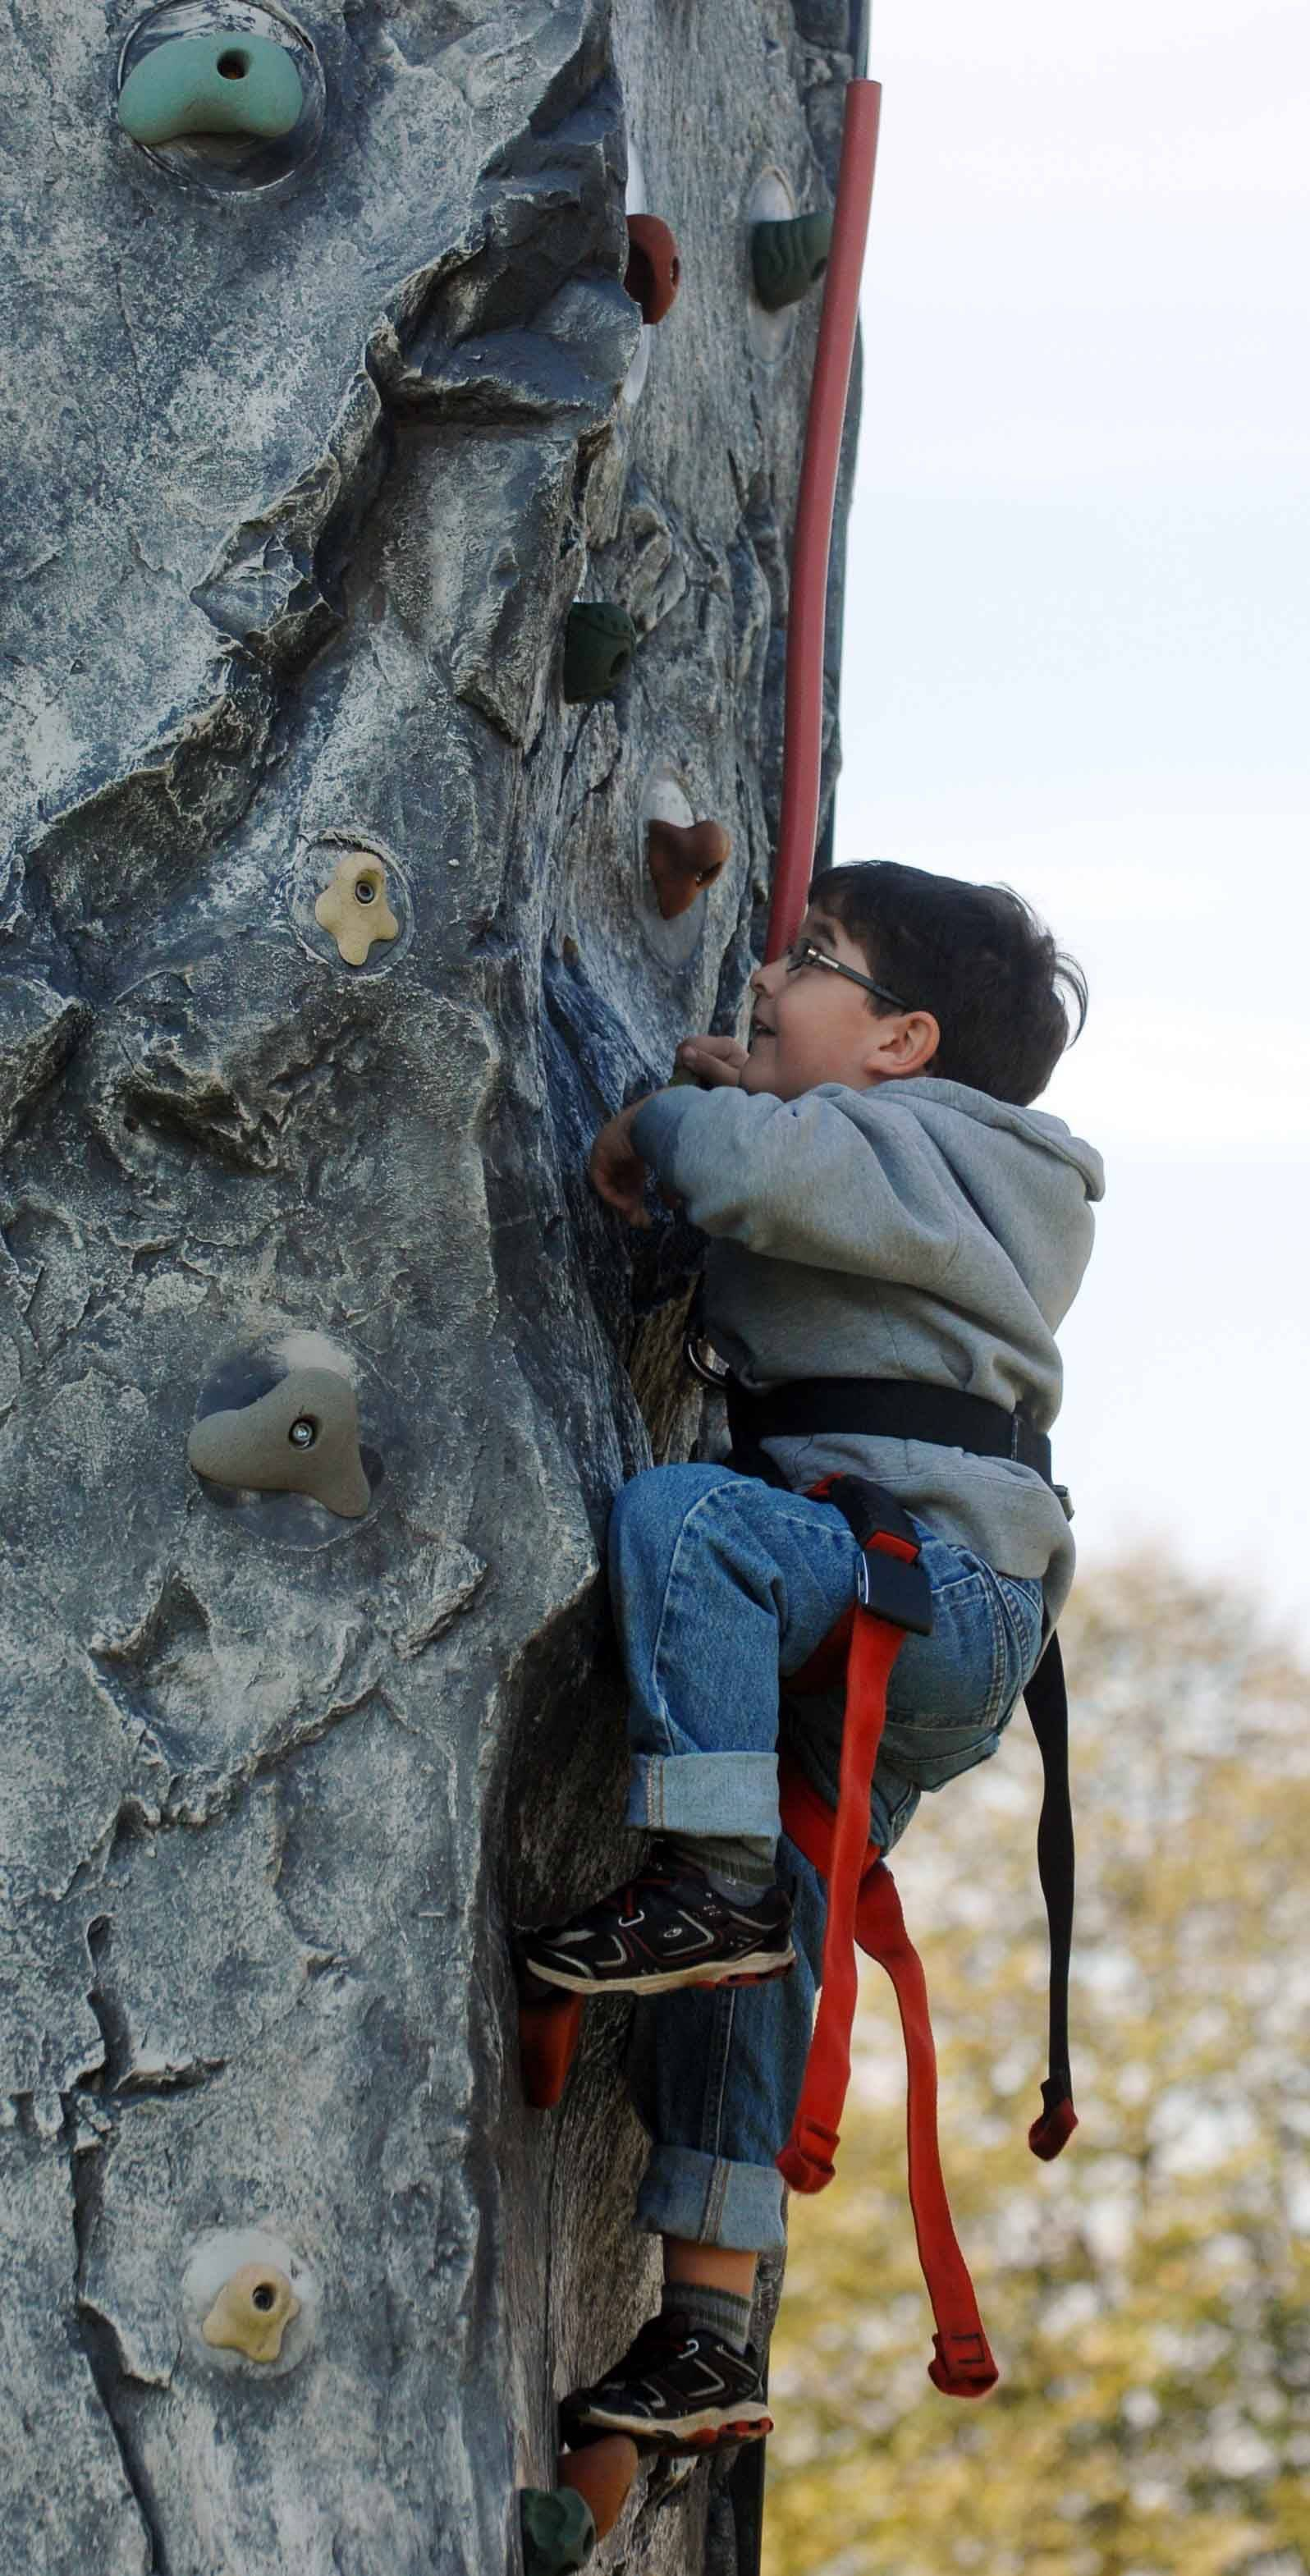 Nicholas Sanguinetti, 5, of Wheaton, climbs the rock wall Saturday during a festival held in conjunction with Make a Difference Day.